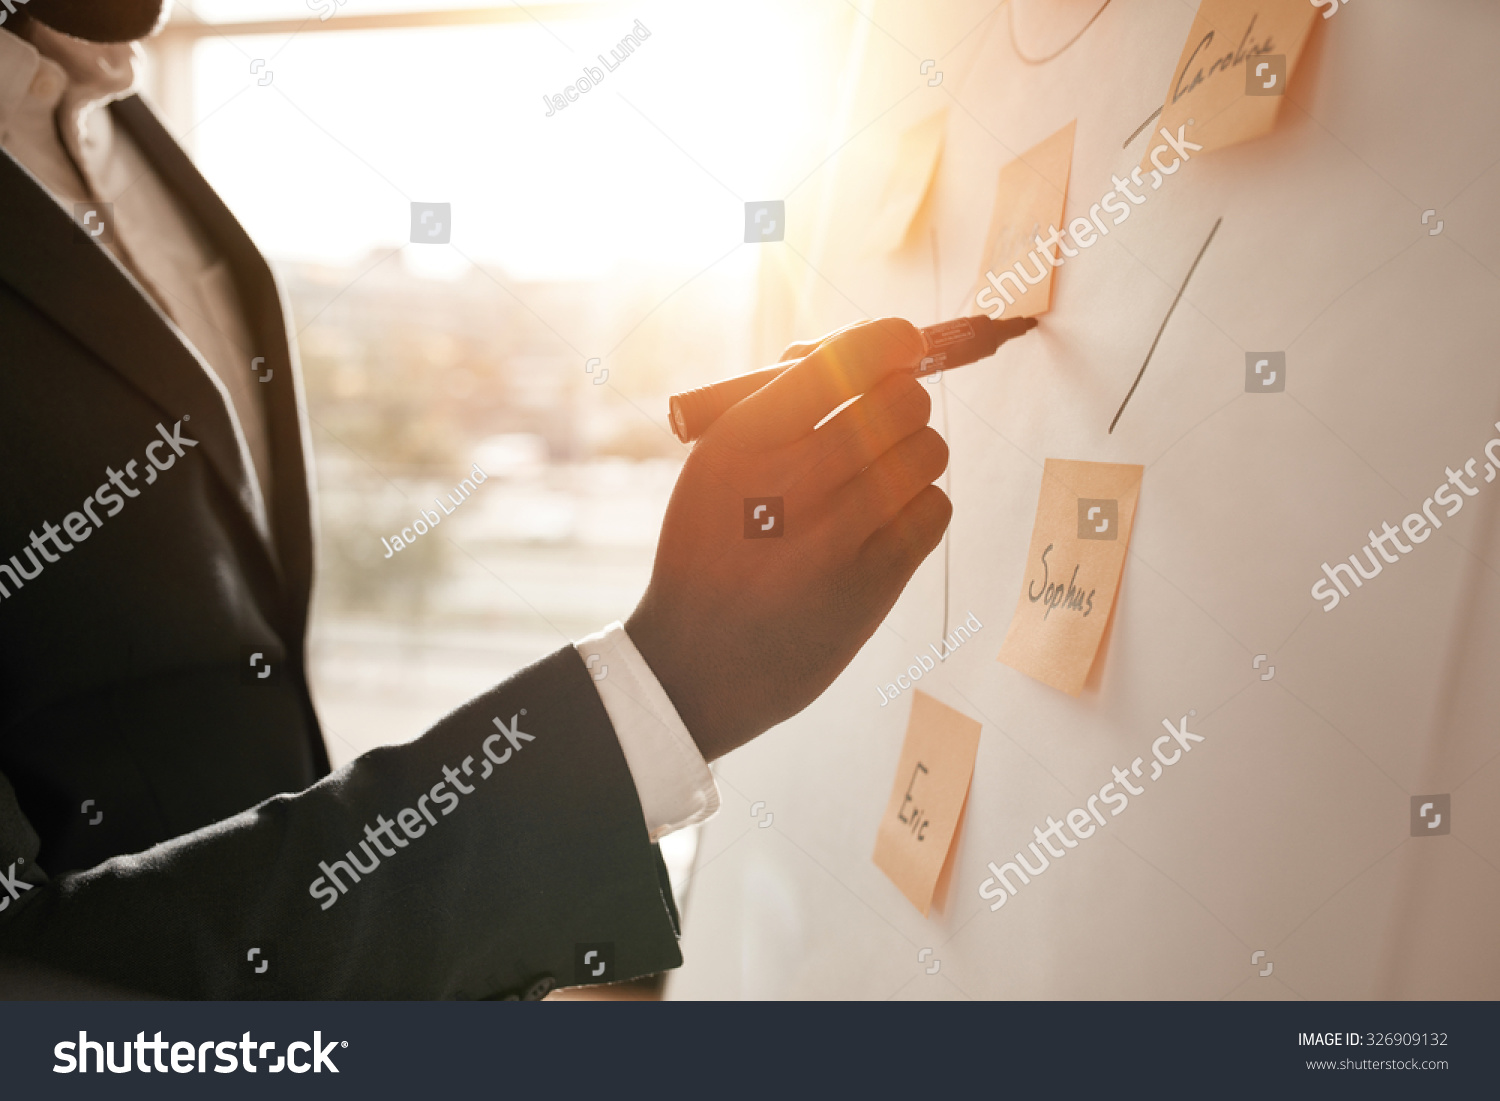 stock-photo-cropped-shot-of-businessman-putting-his-ideas-on-white-board-during-a-presentation-in-conference-326909132